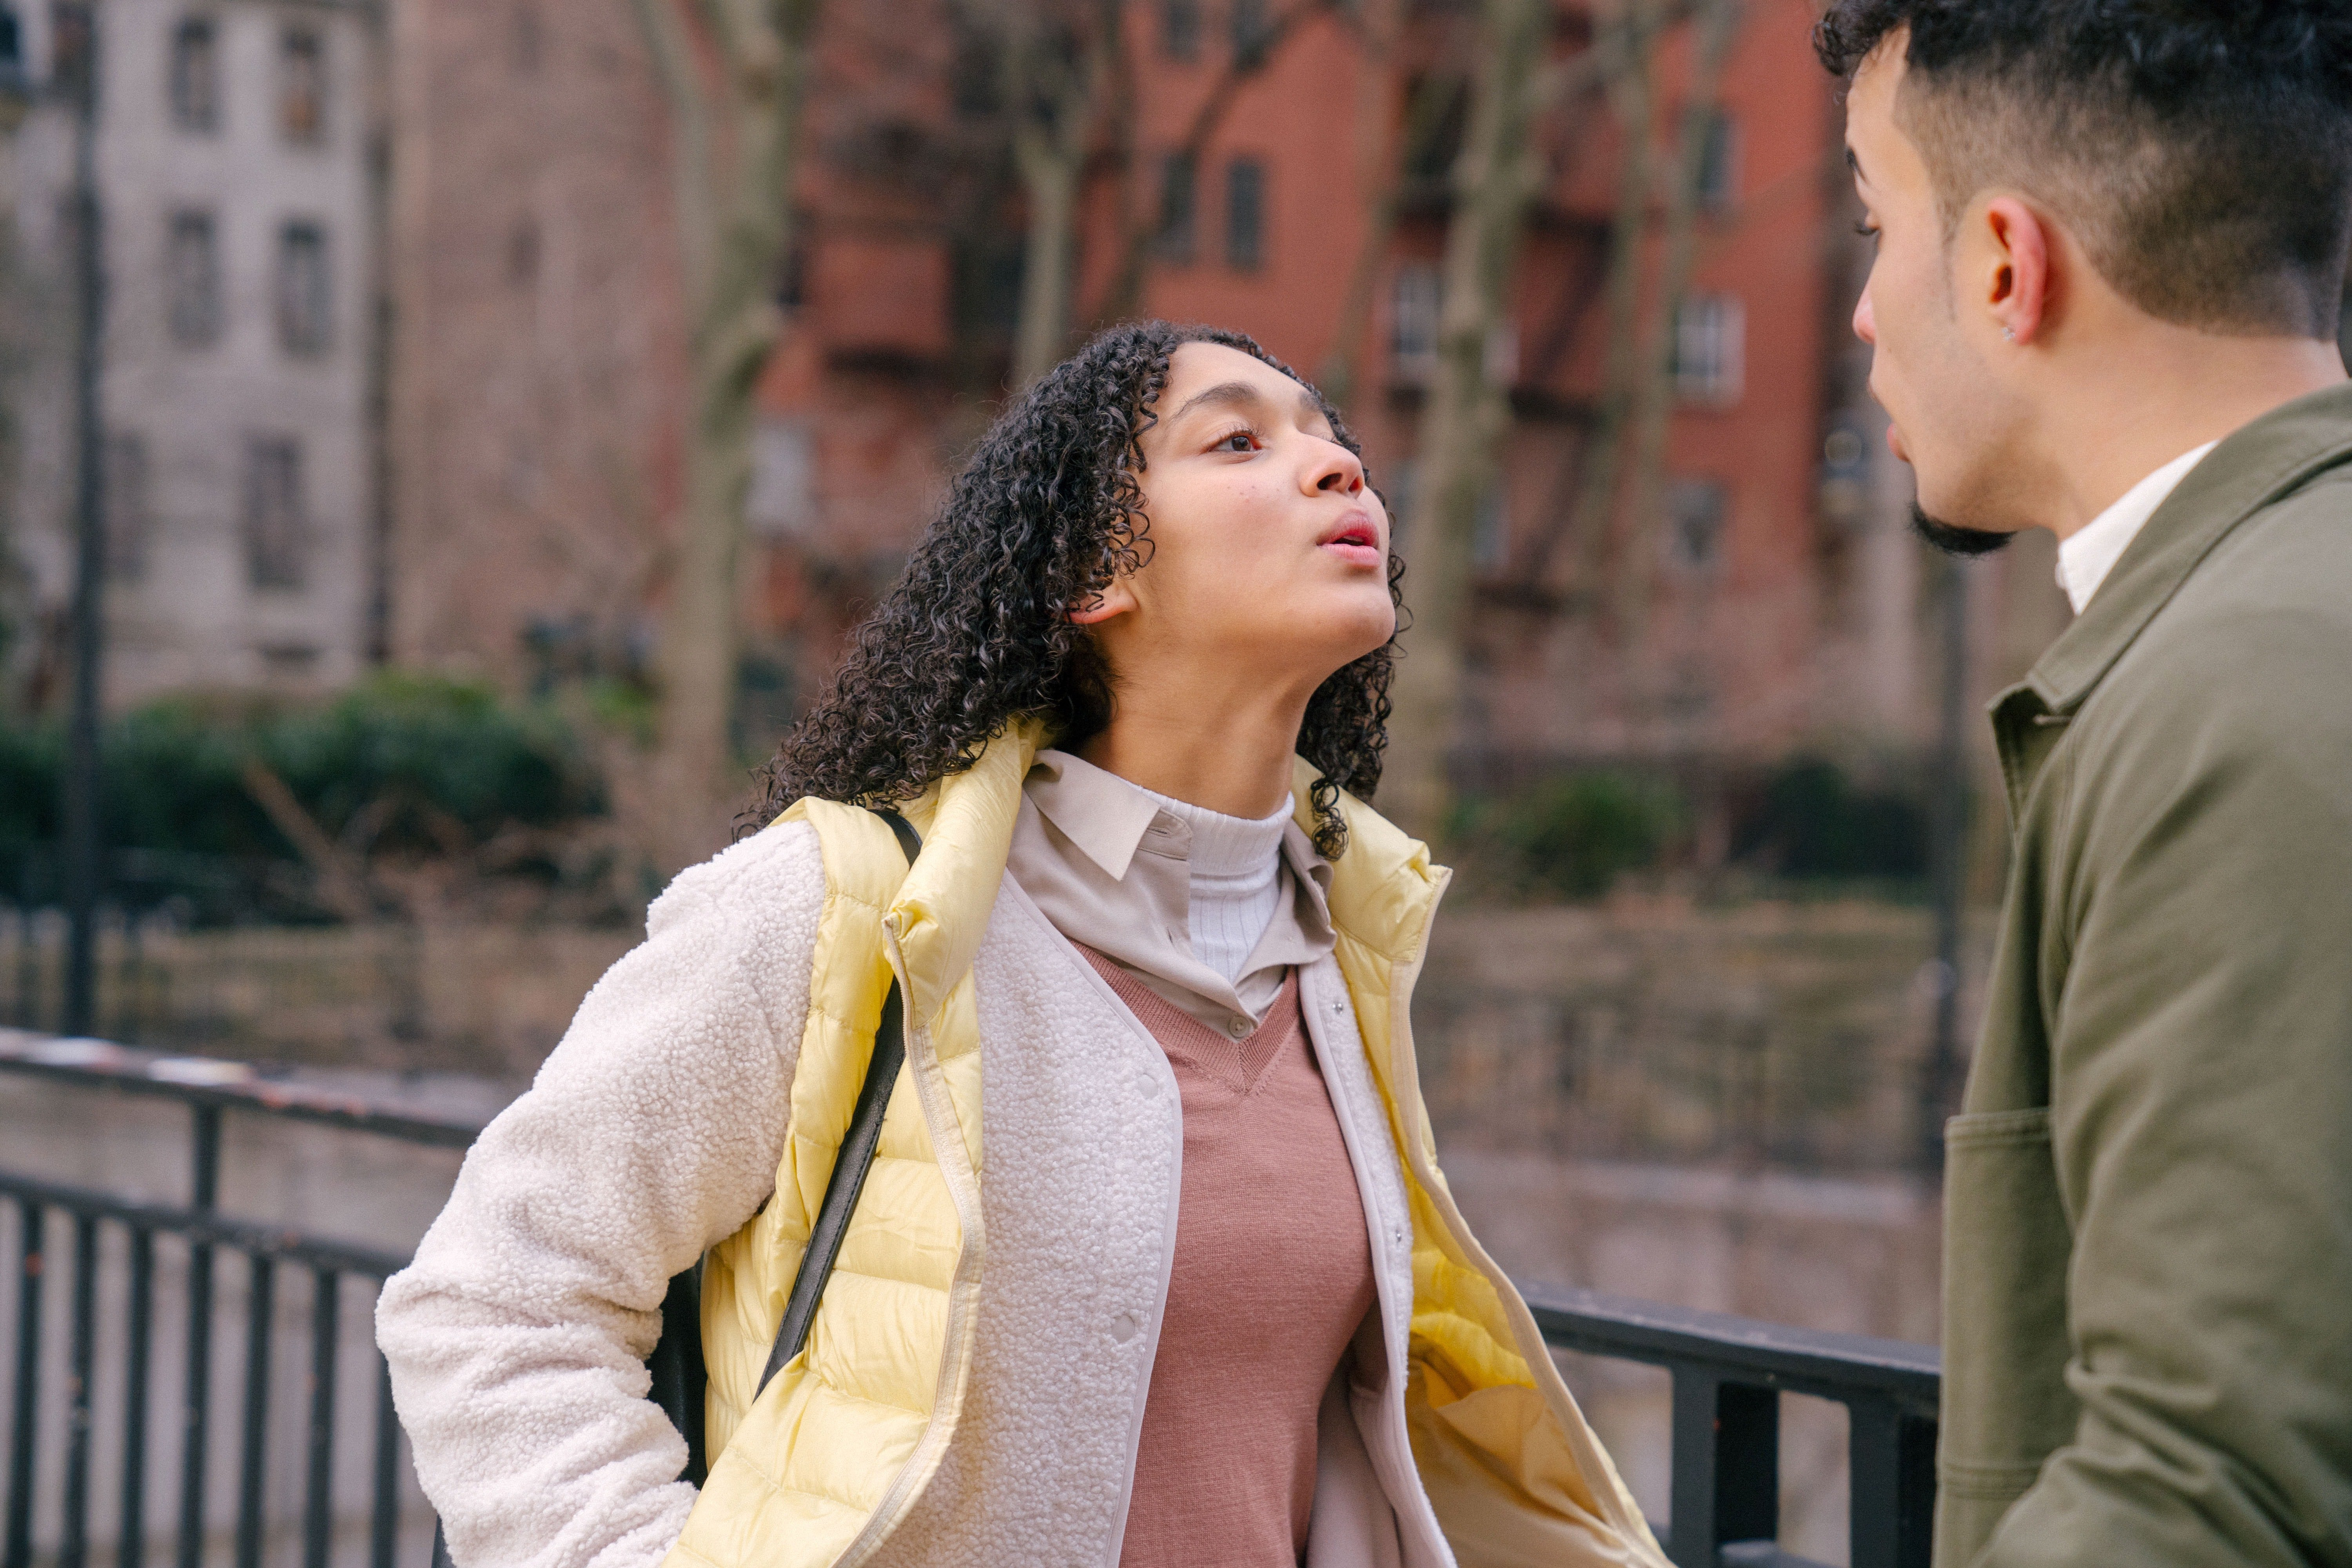 Young woman argues with her fiancé | Photo: Pexels